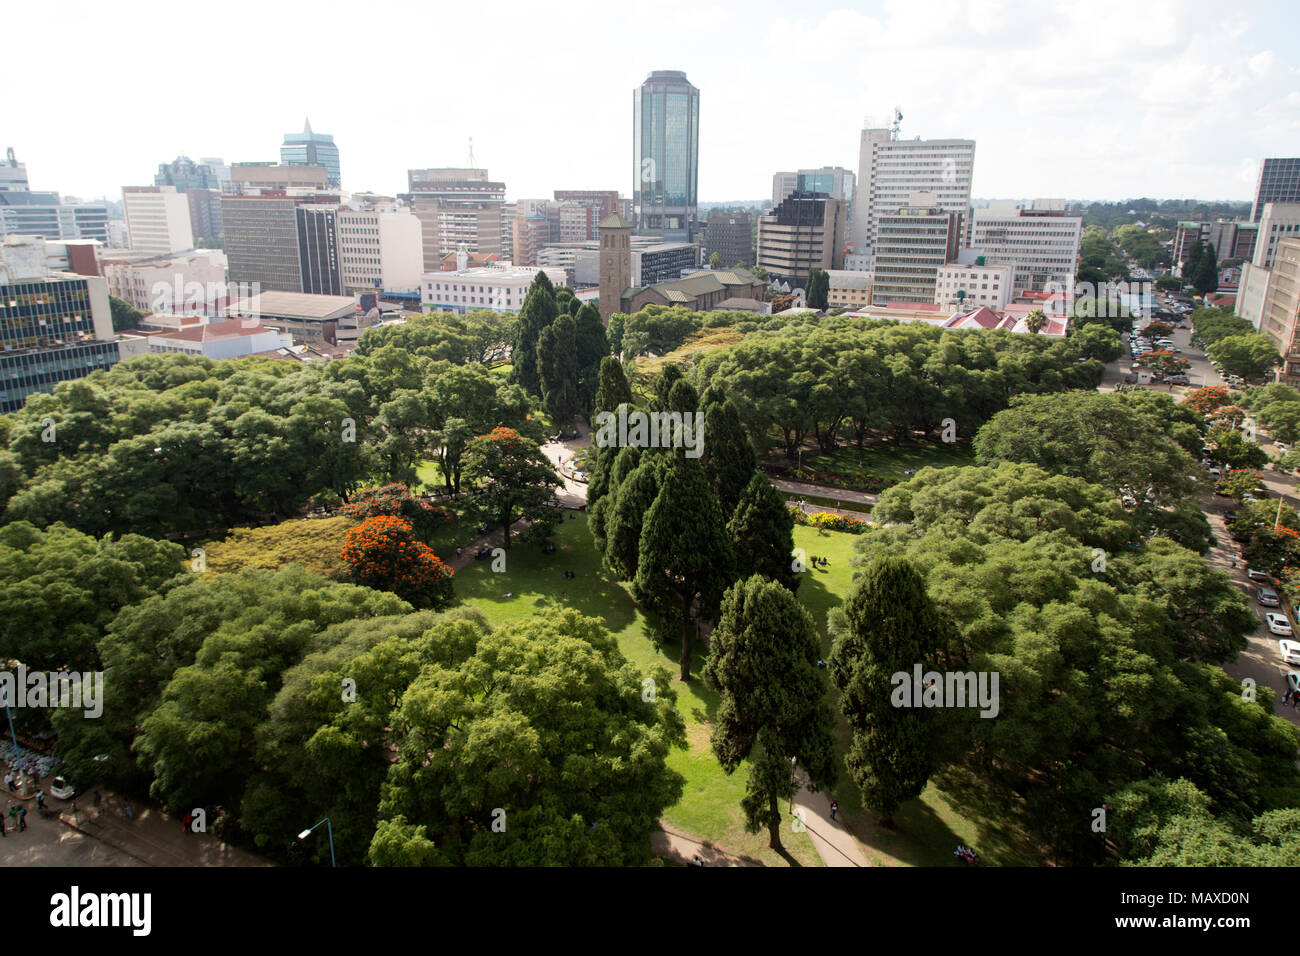 A sunny day at Africa Unity Square in Harare, Zimbabwe. - Stock Image